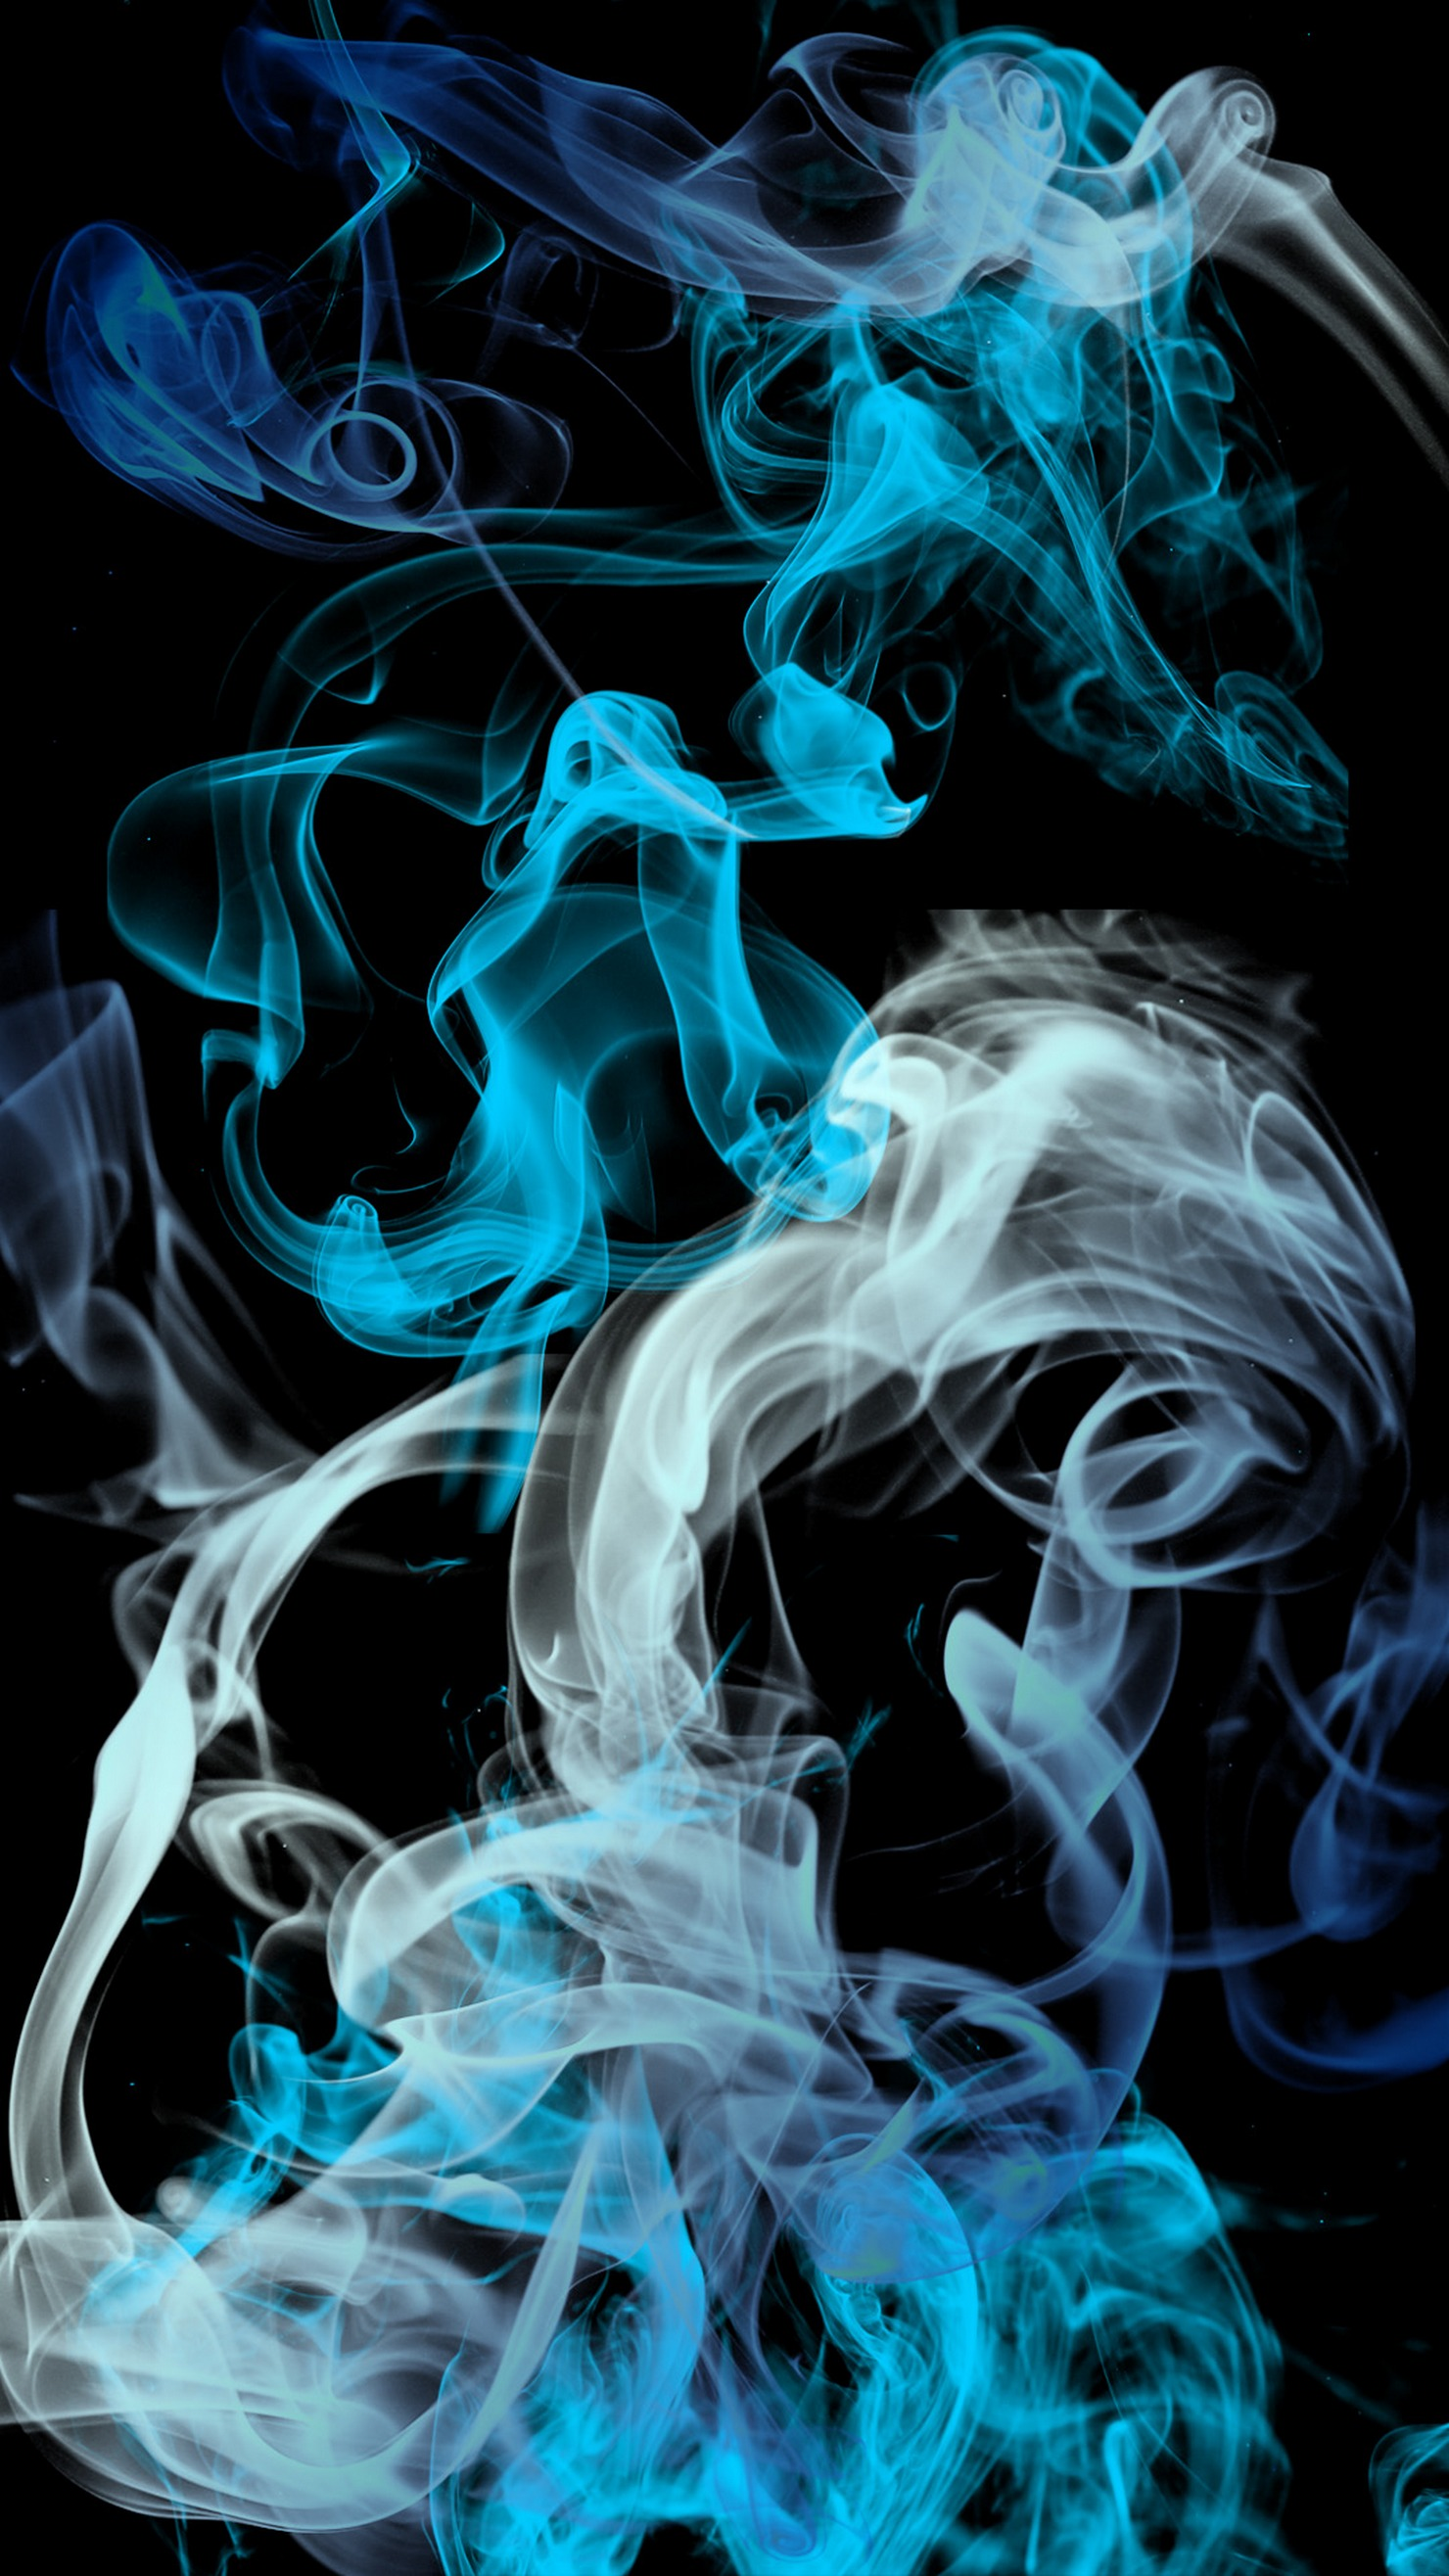 Blue Grey Black Smoke Background Iphone Retina Smoke Hd